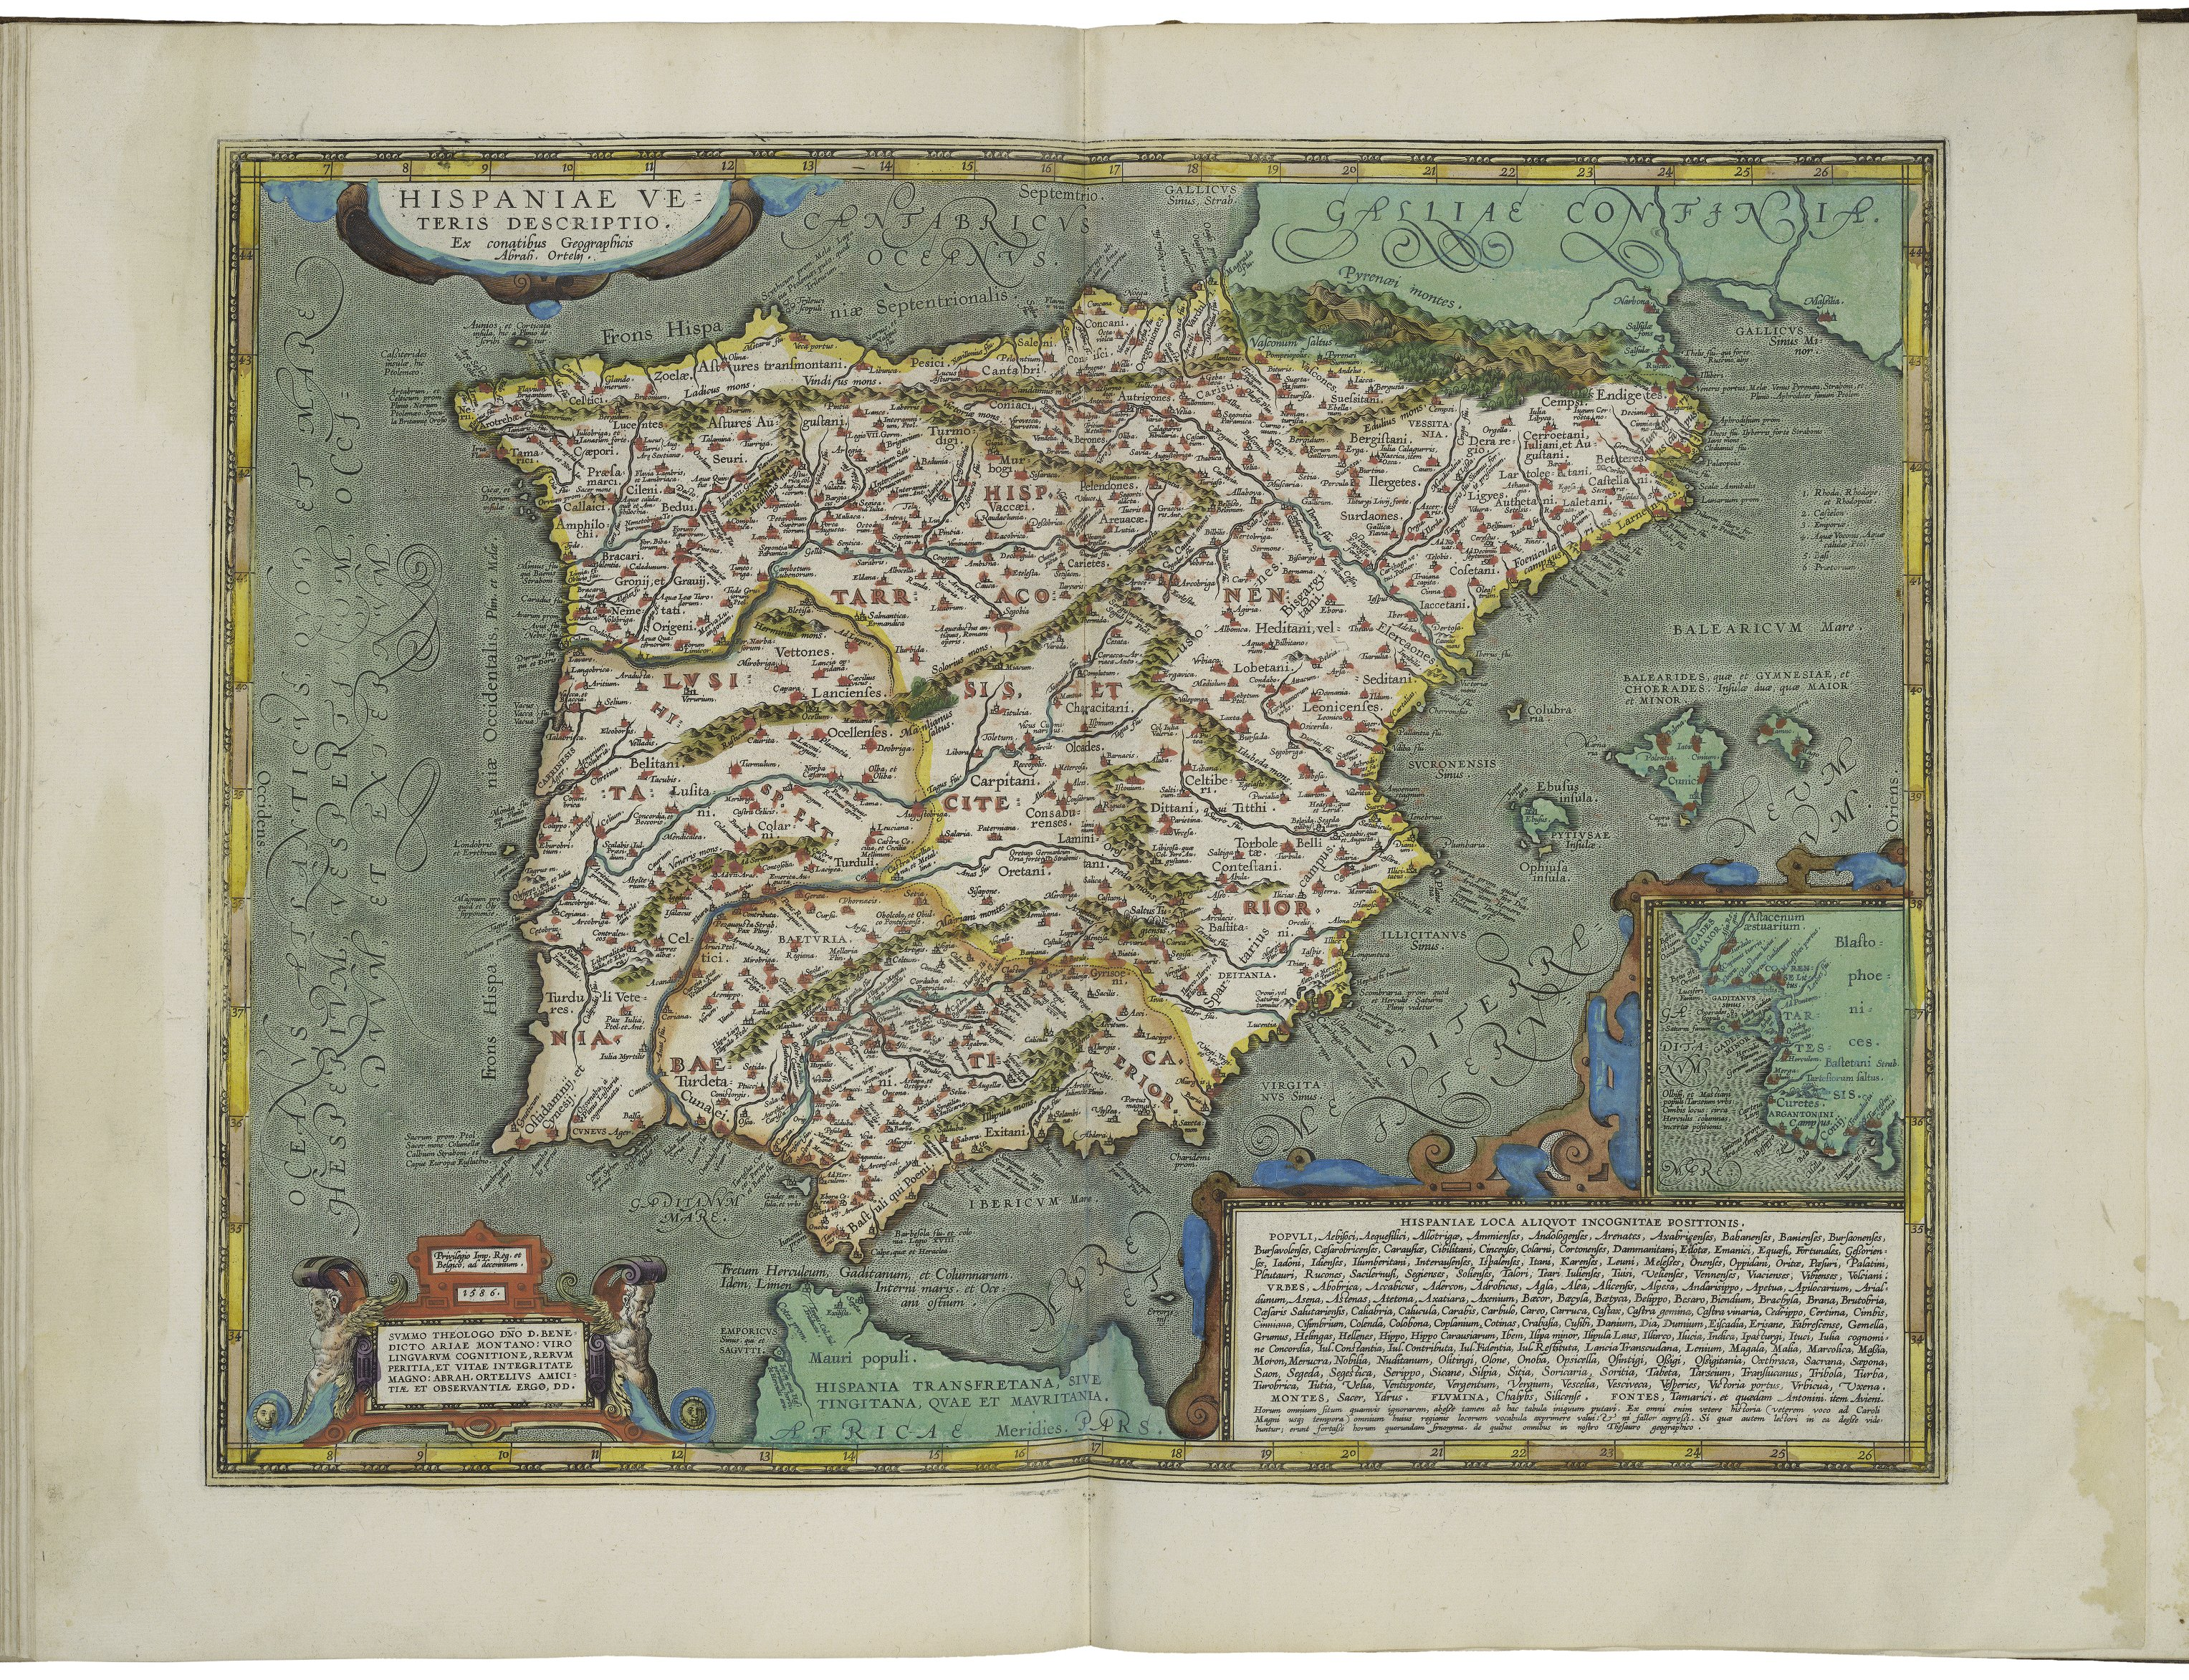 Map Of Spain Cadiz.File Map Of Spain And Inset Map Of Cadiz By Abraham Ortelius Jpeg